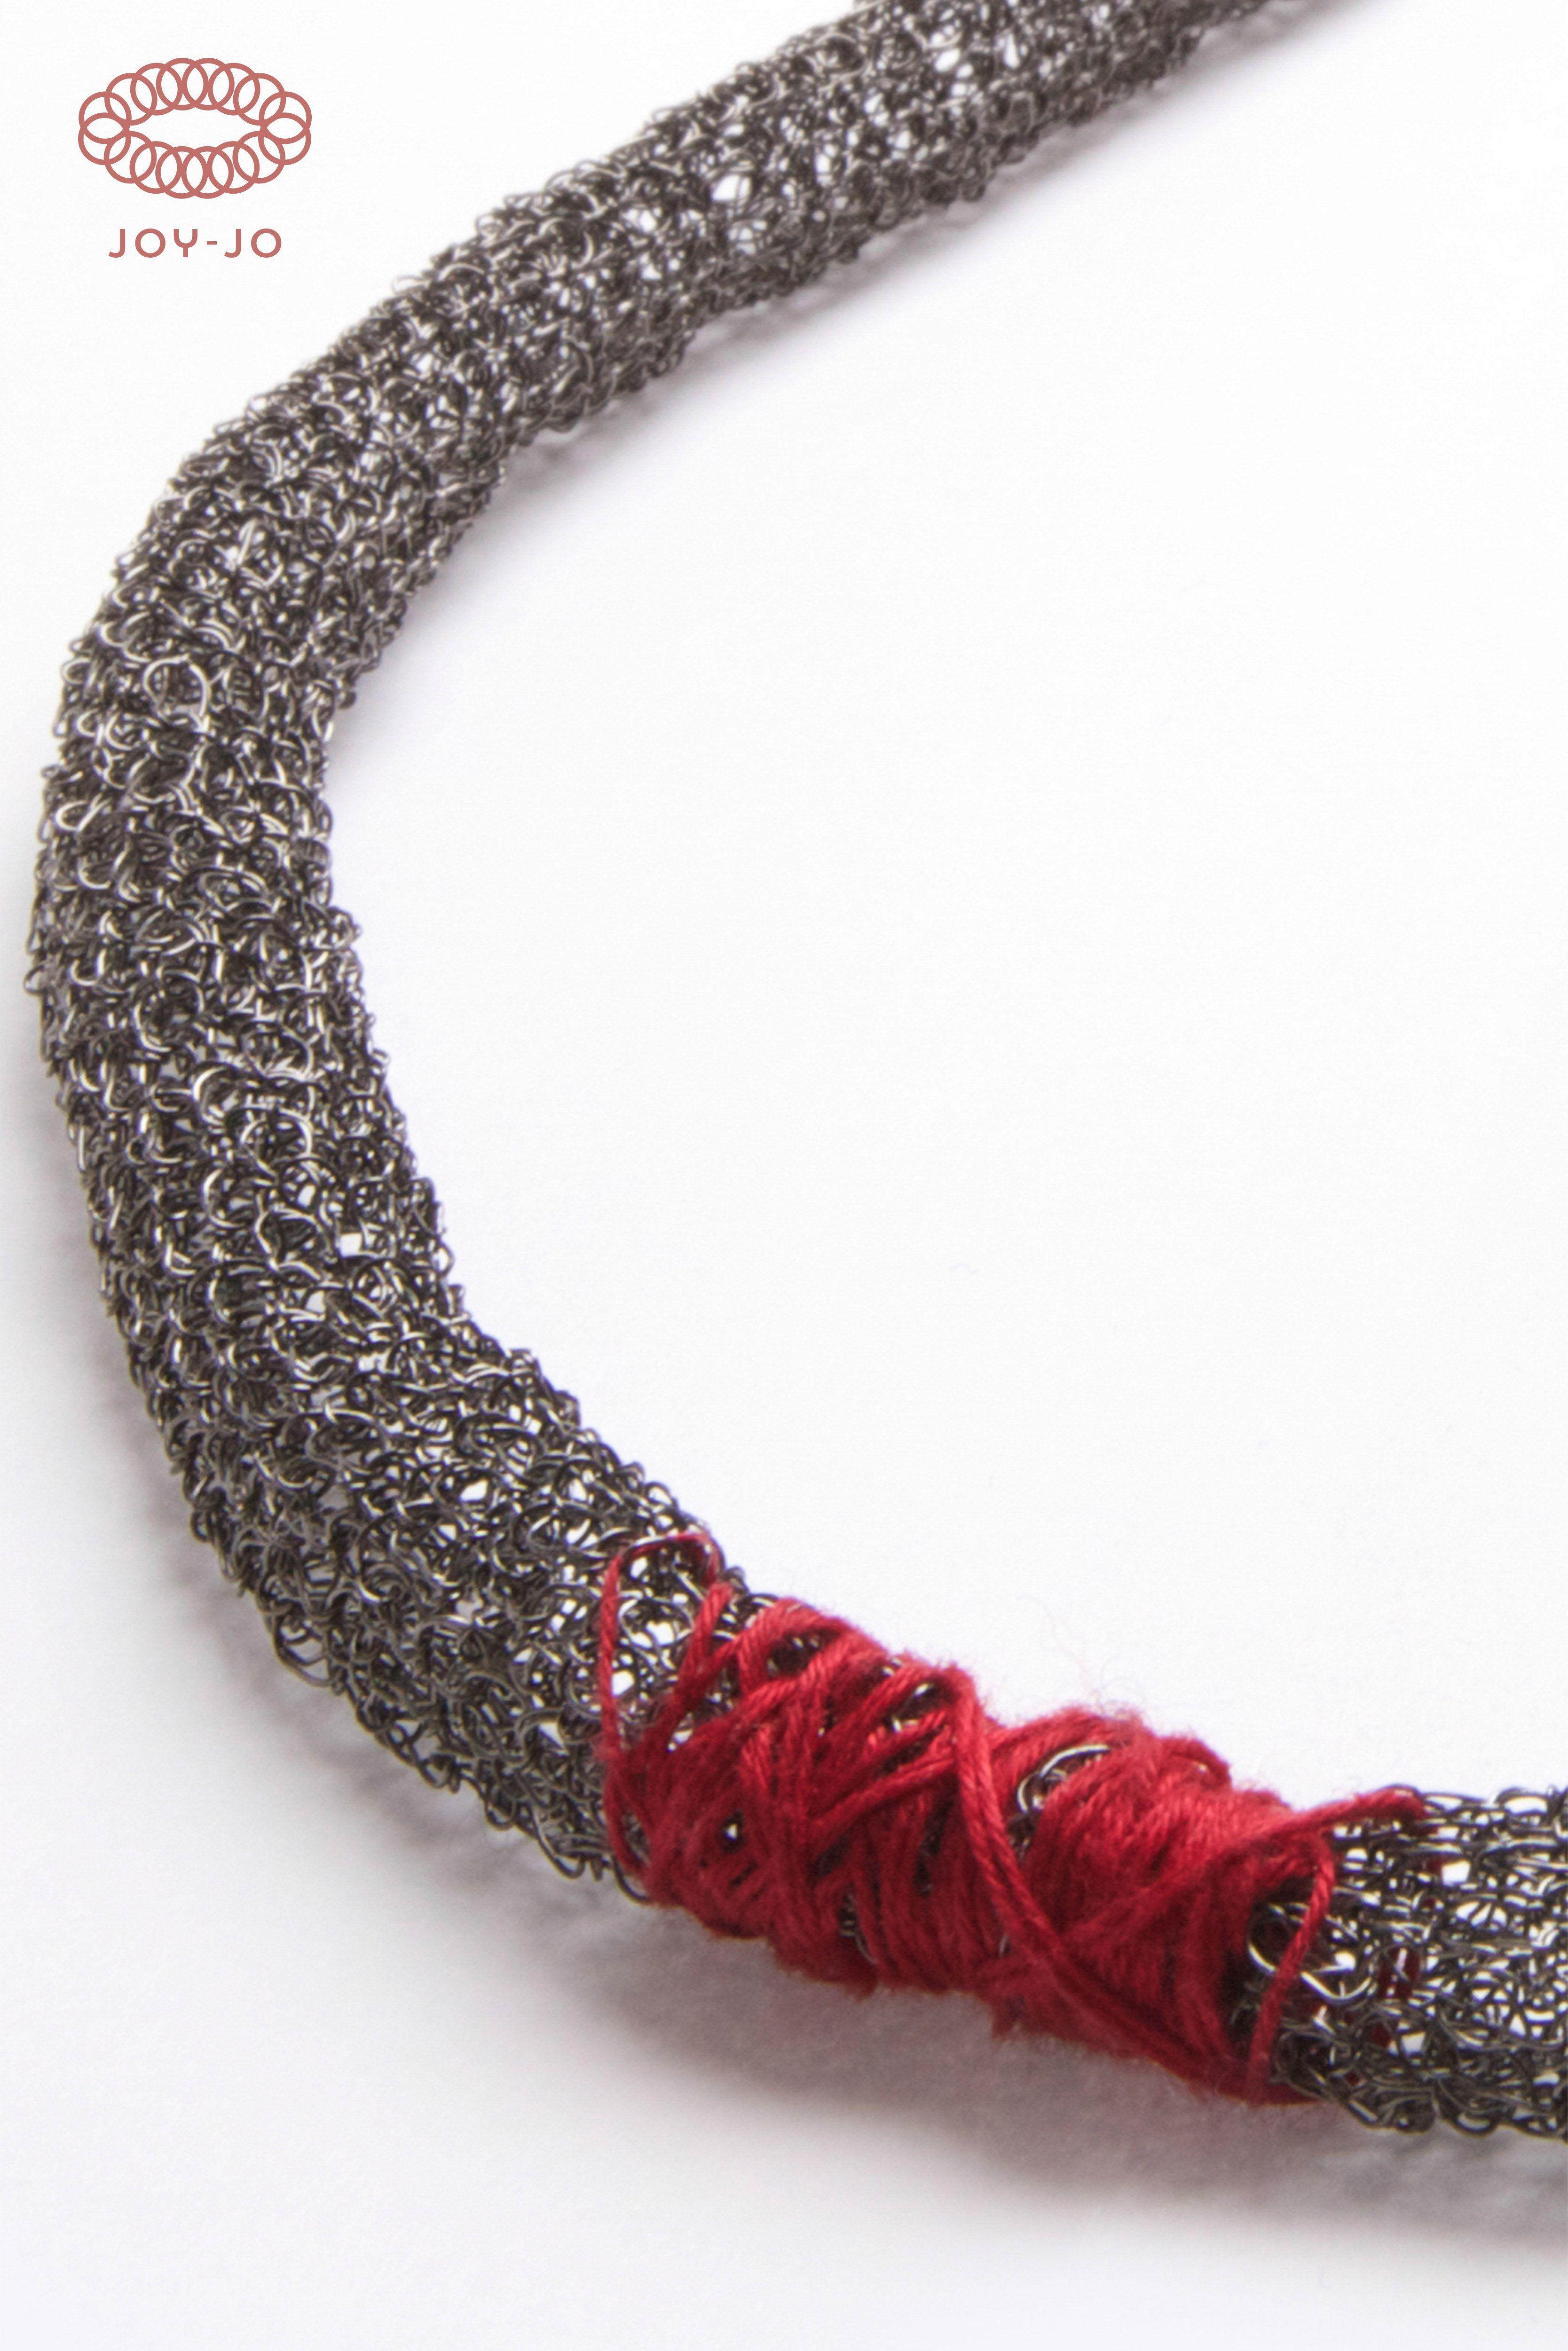 Symbiosis-Red Pepper: made of copper dipped in black rhodium with cotton insert